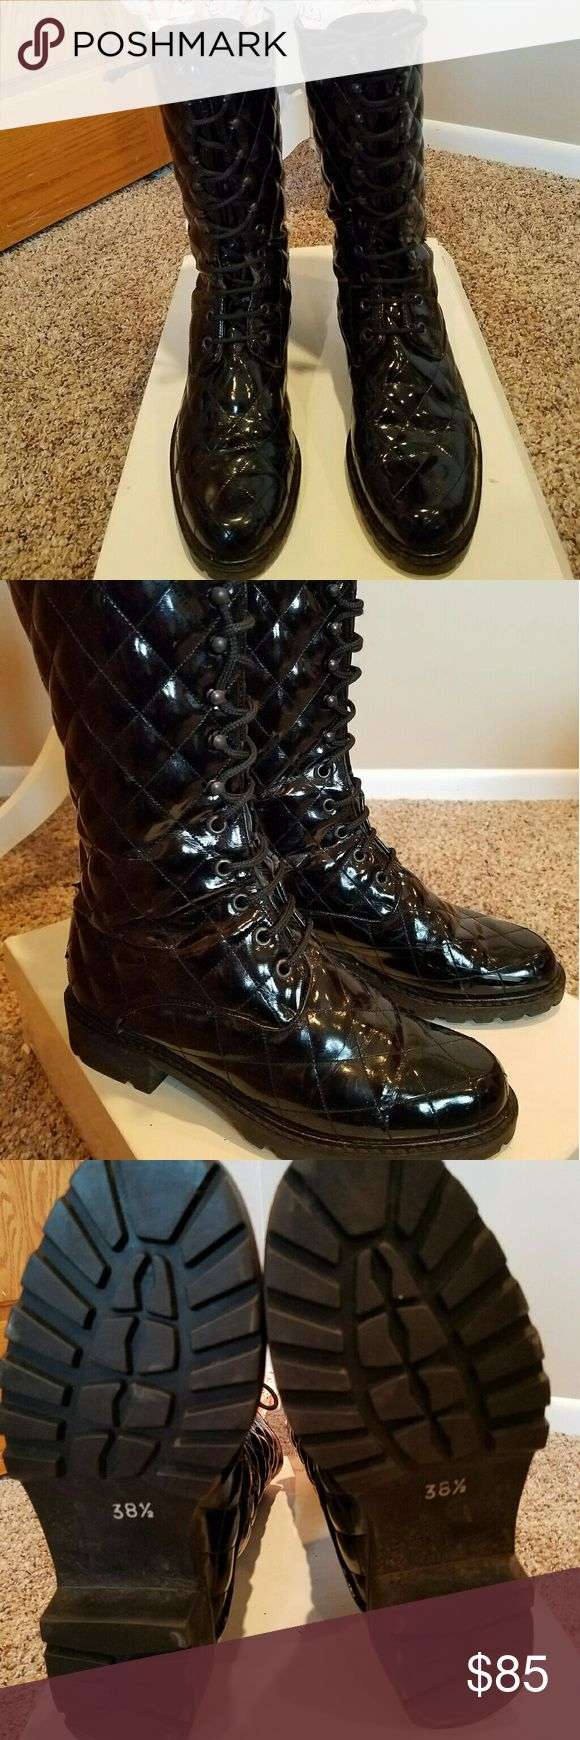 Nouchka Black Patent leather Combat Boot In style, lace up, quilted real patent leather military boots. Outstanding, with one specific flaw. The back of both boots on bottom of leather is peeling away from the center seam. Since they are black, it is hard to notice. If you can accept that, these vintage beauties are amazing. They are 38.5 and very fitted. I am a US 8 & these go right to my toe. Good for 7.5. Ends of laces do not have aglets. They are knotted & decent condition. Soles EUC…